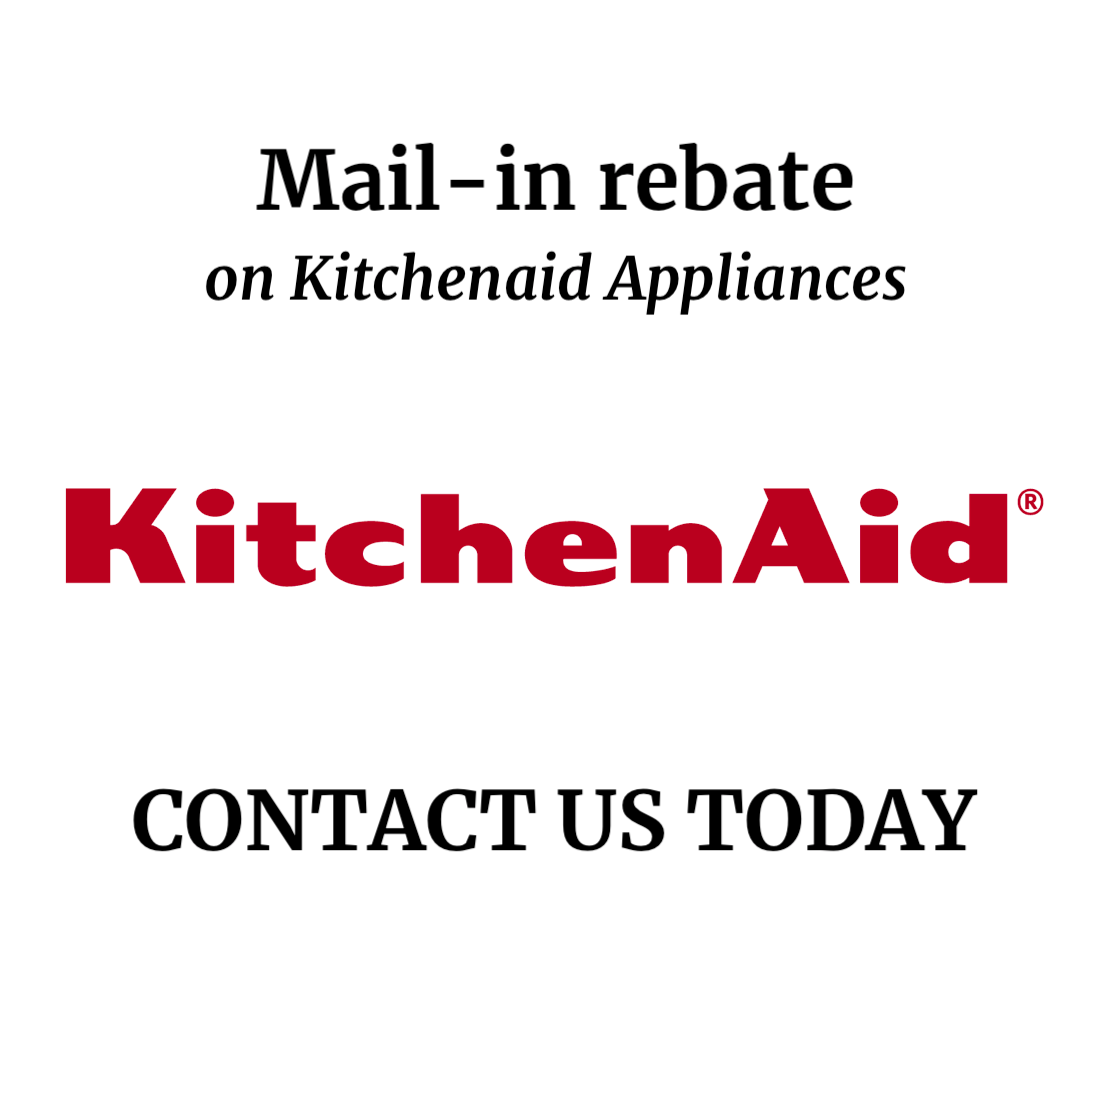 PROMO-kitchenaid.png